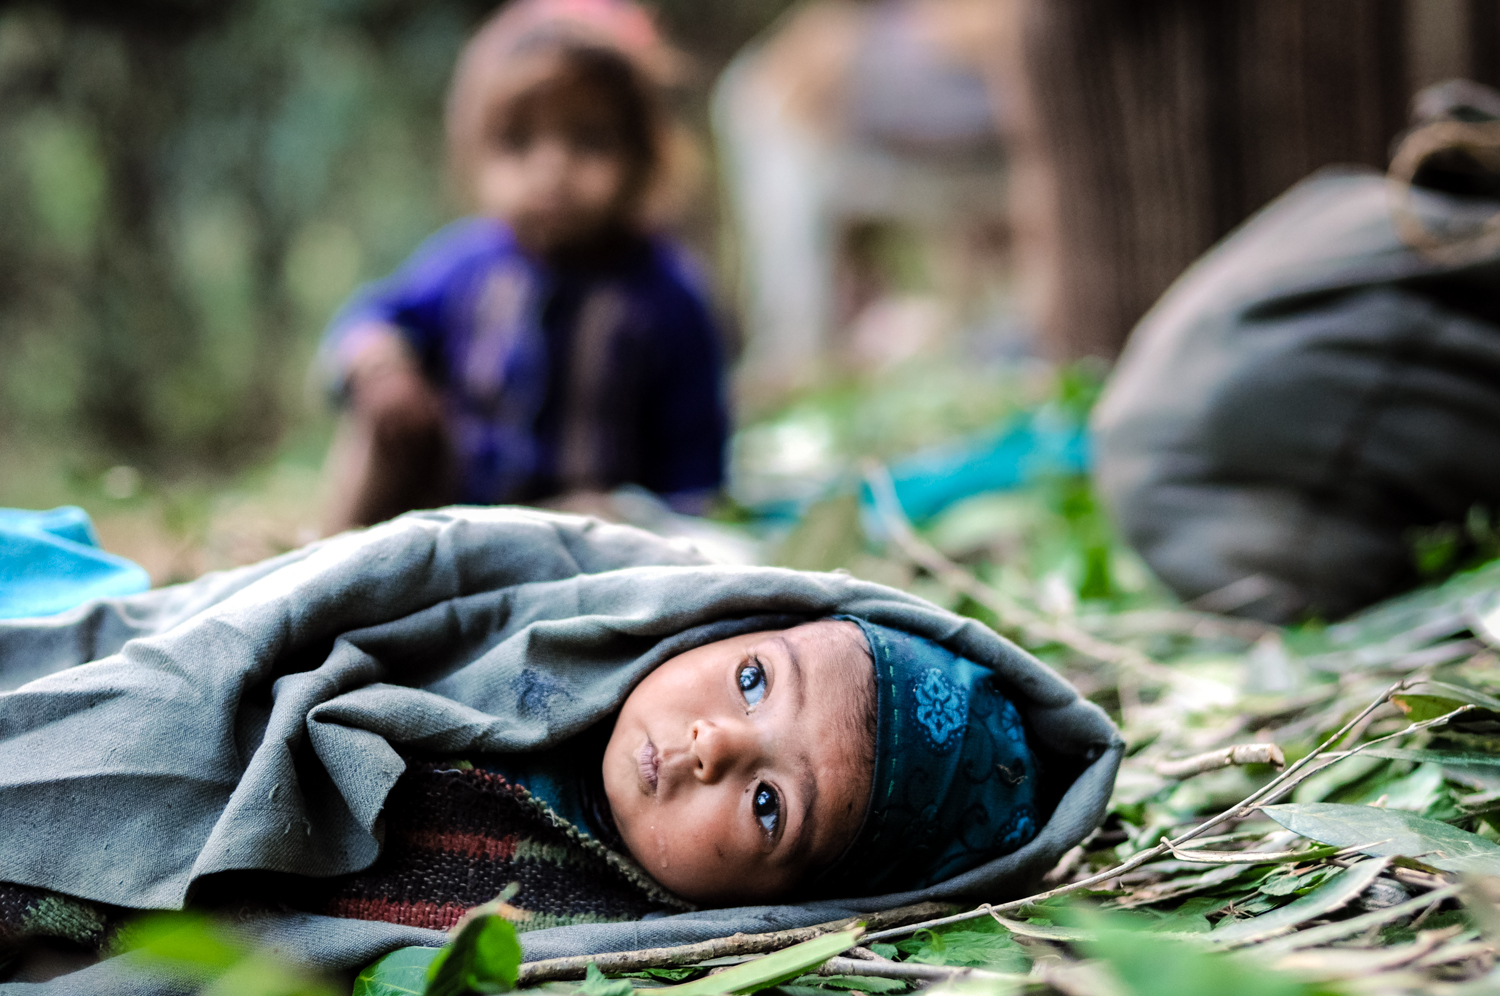 Most Van Gujjars think of themselves as part of the forest; they belong to it, and in it. Here, 3-month-old Halima rests on the forest floor while her parents are busy loading up the pack animals.